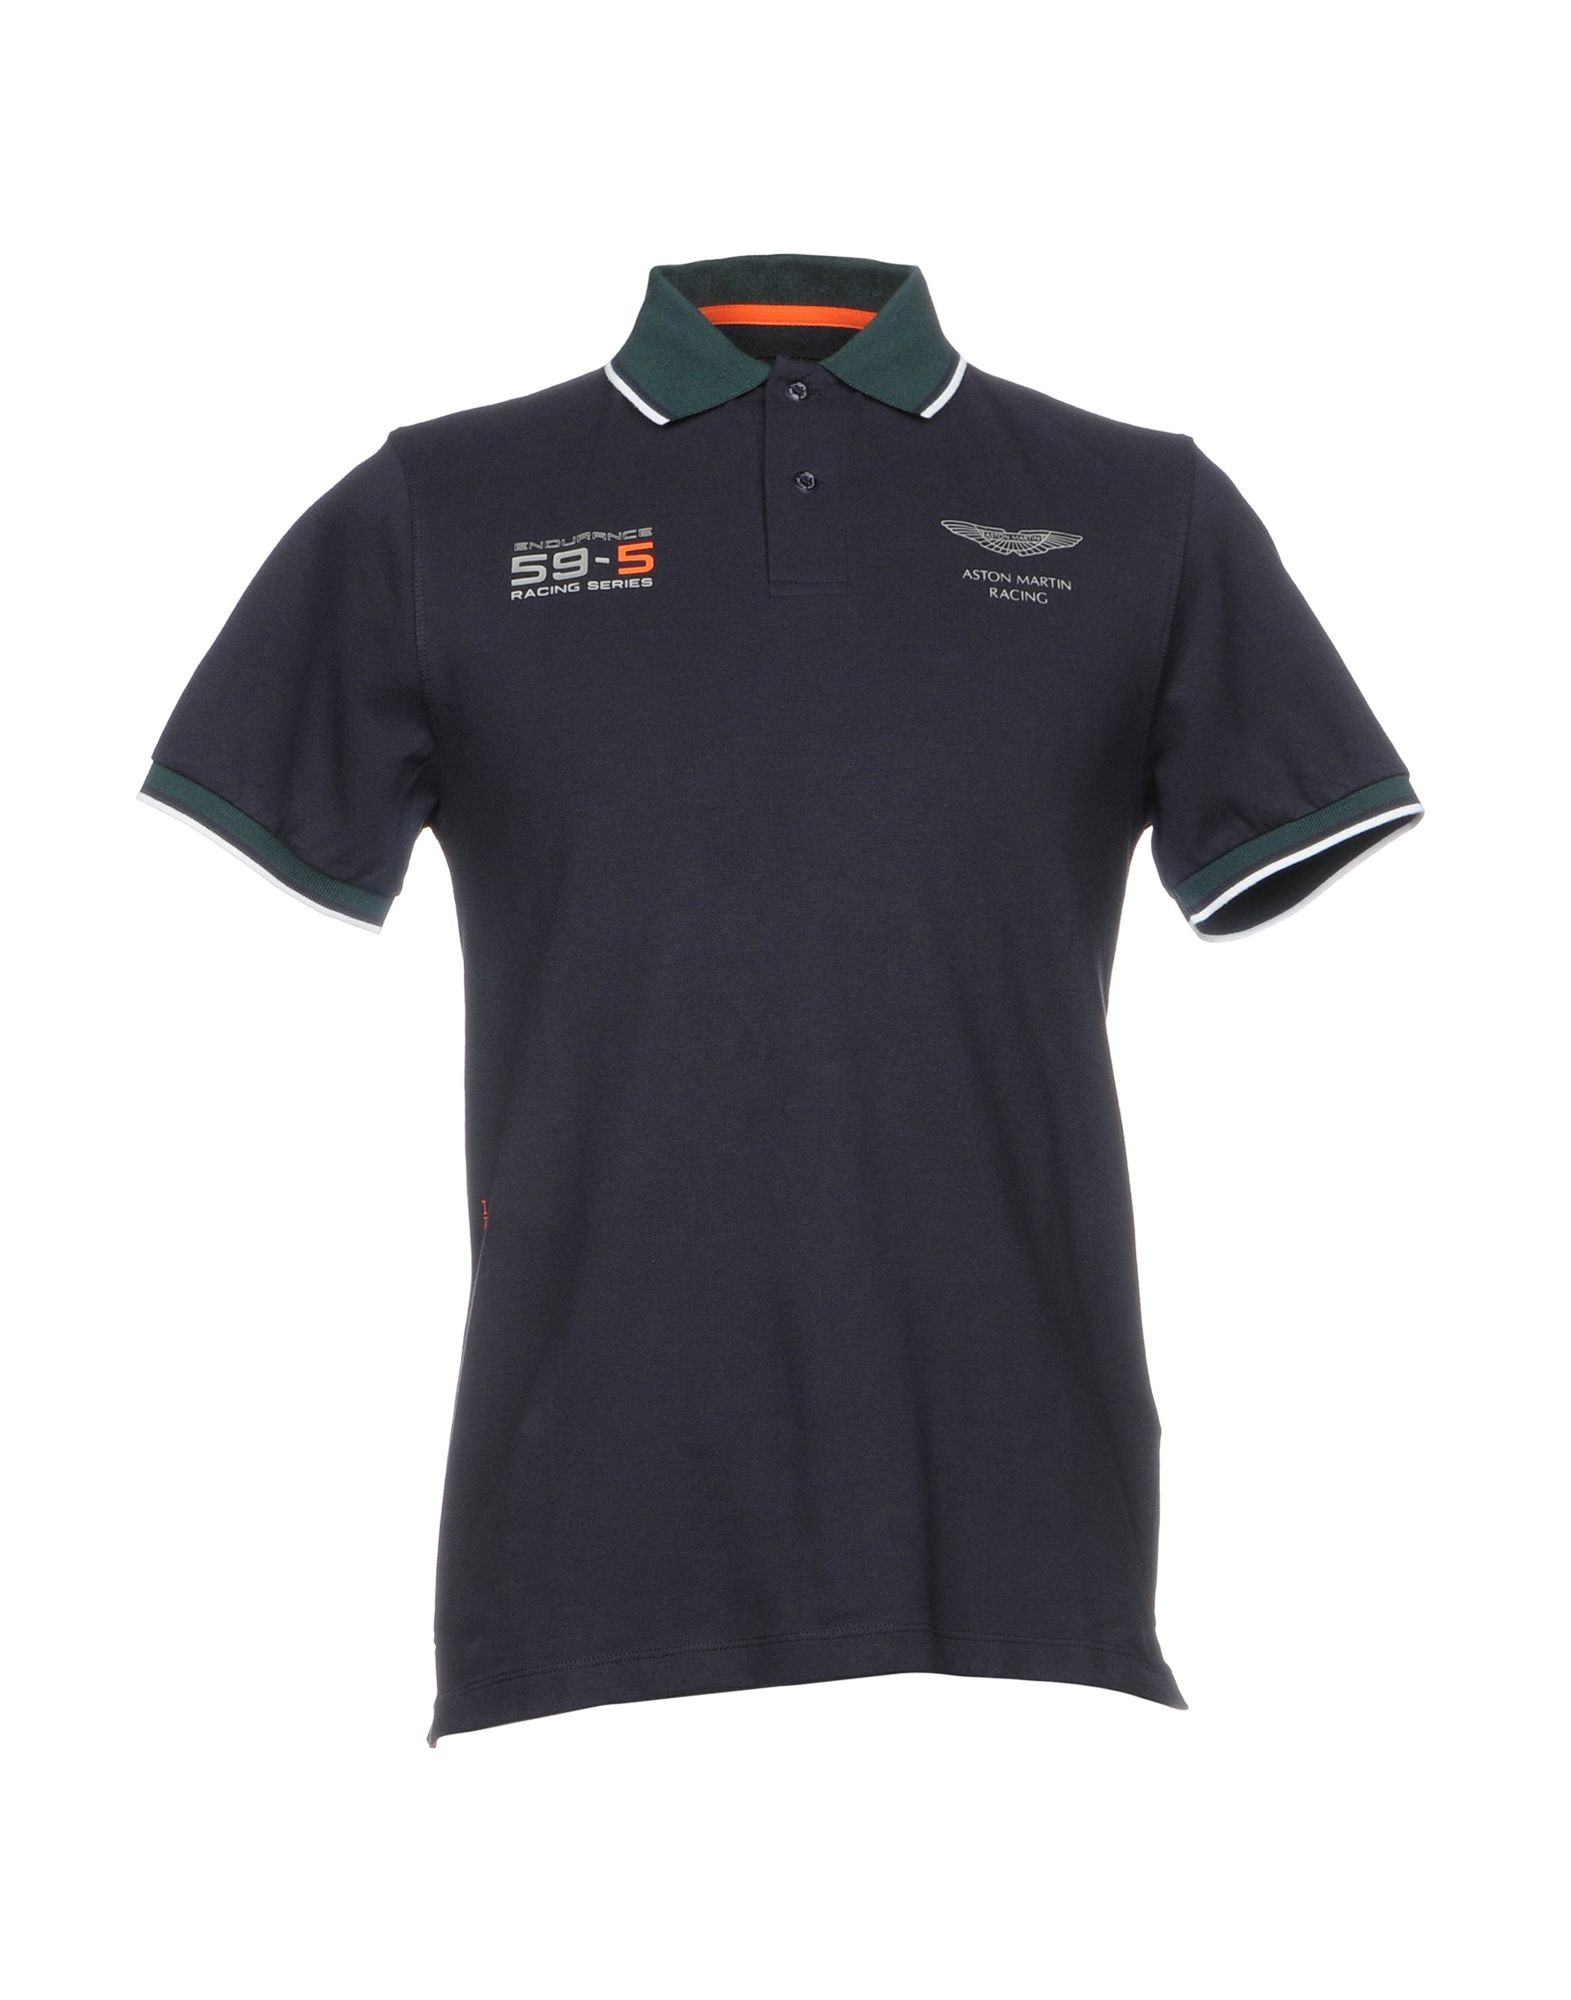 aston martin racing by hackett polo shirts shop at ebates. Black Bedroom Furniture Sets. Home Design Ideas